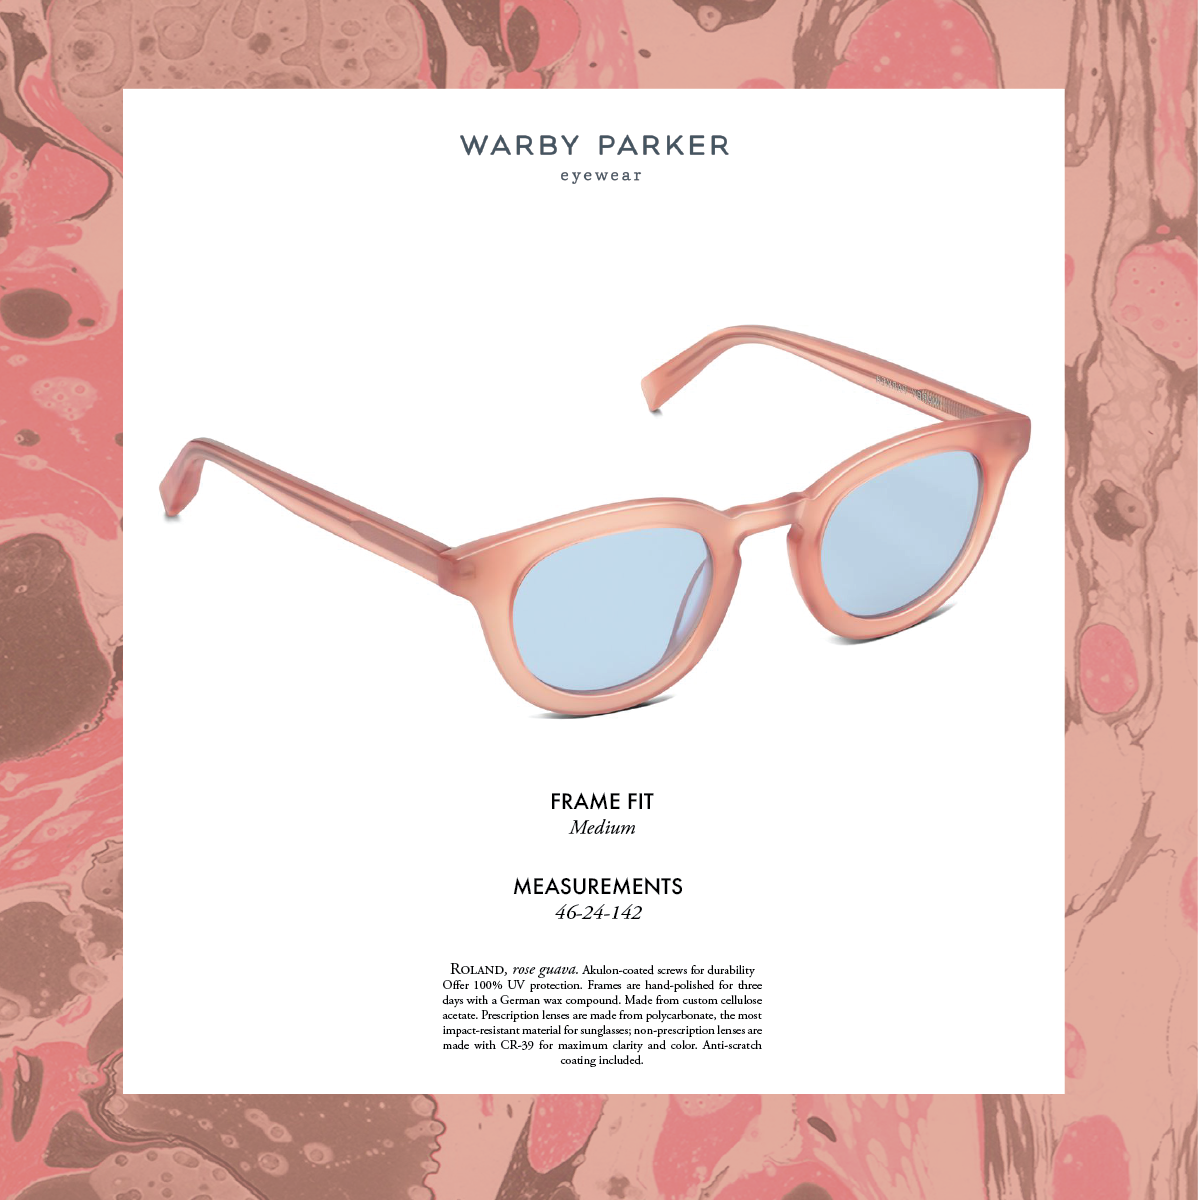 warbyparkerADs_-17.png